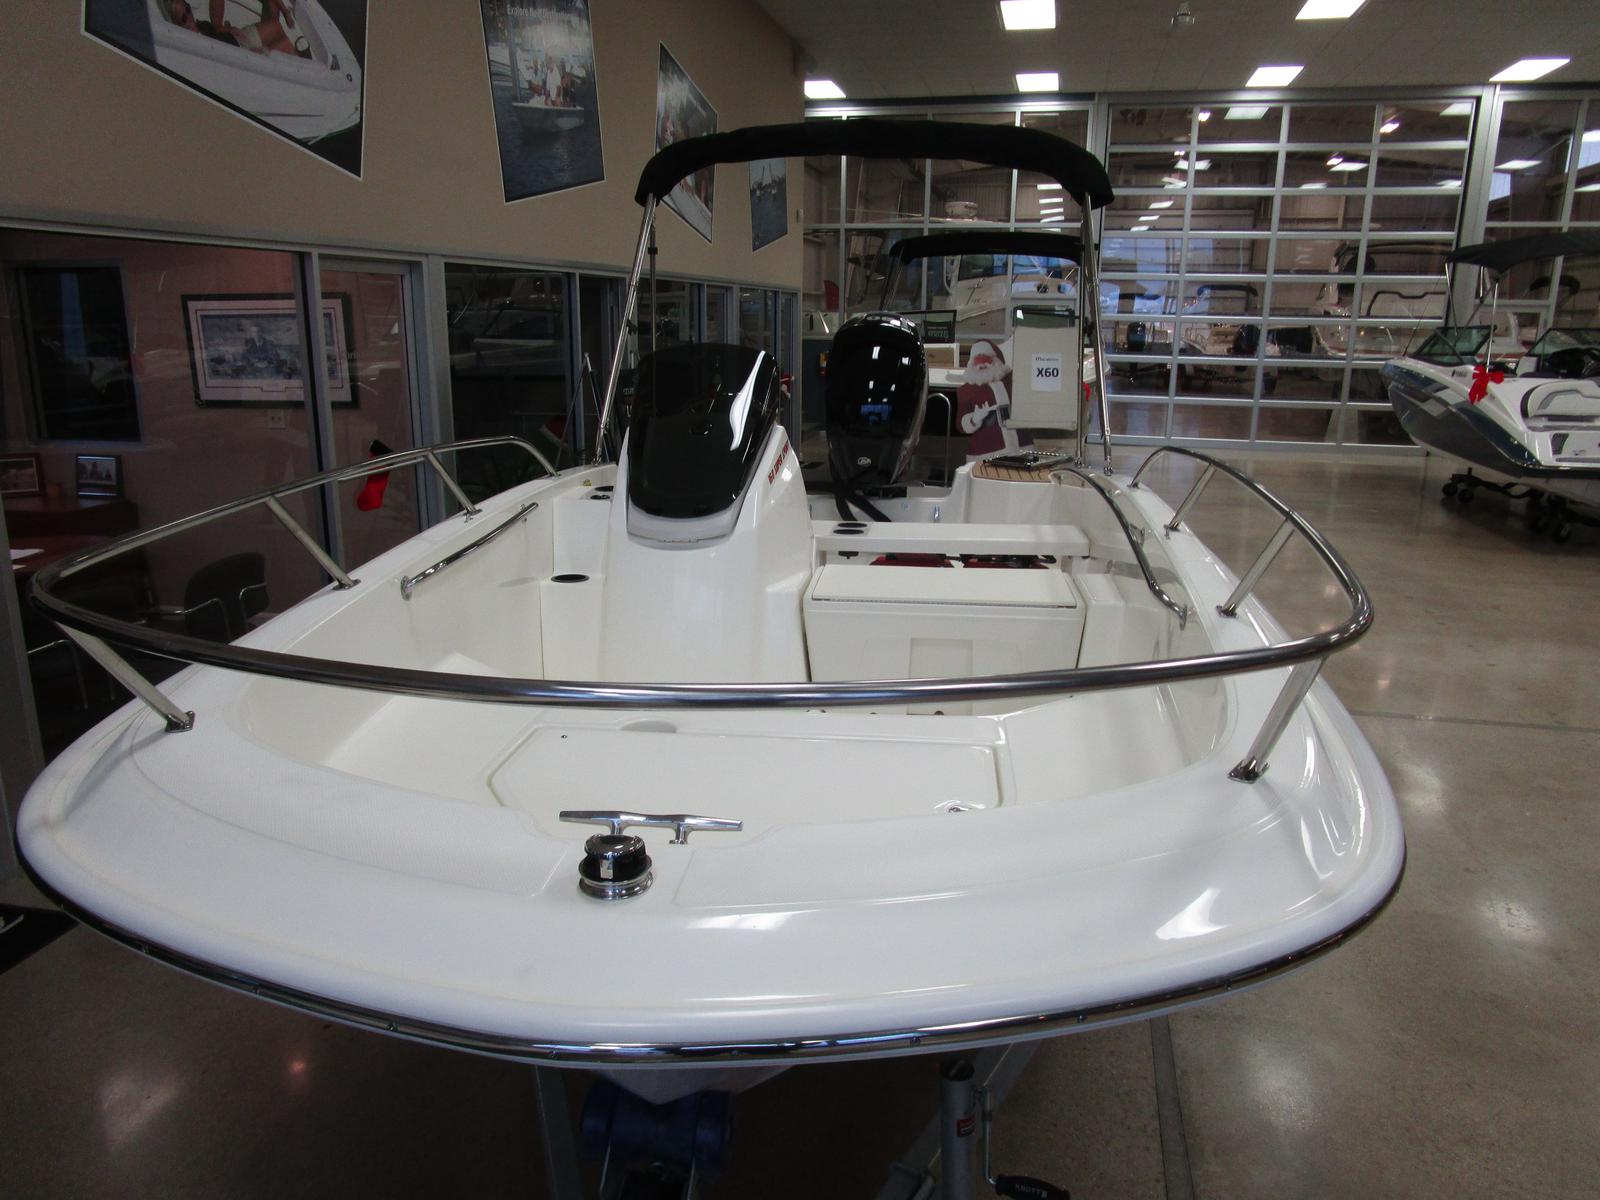 2019 Boston Whaler boat for sale, model of the boat is 160 Super Sport & Image # 3 of 5